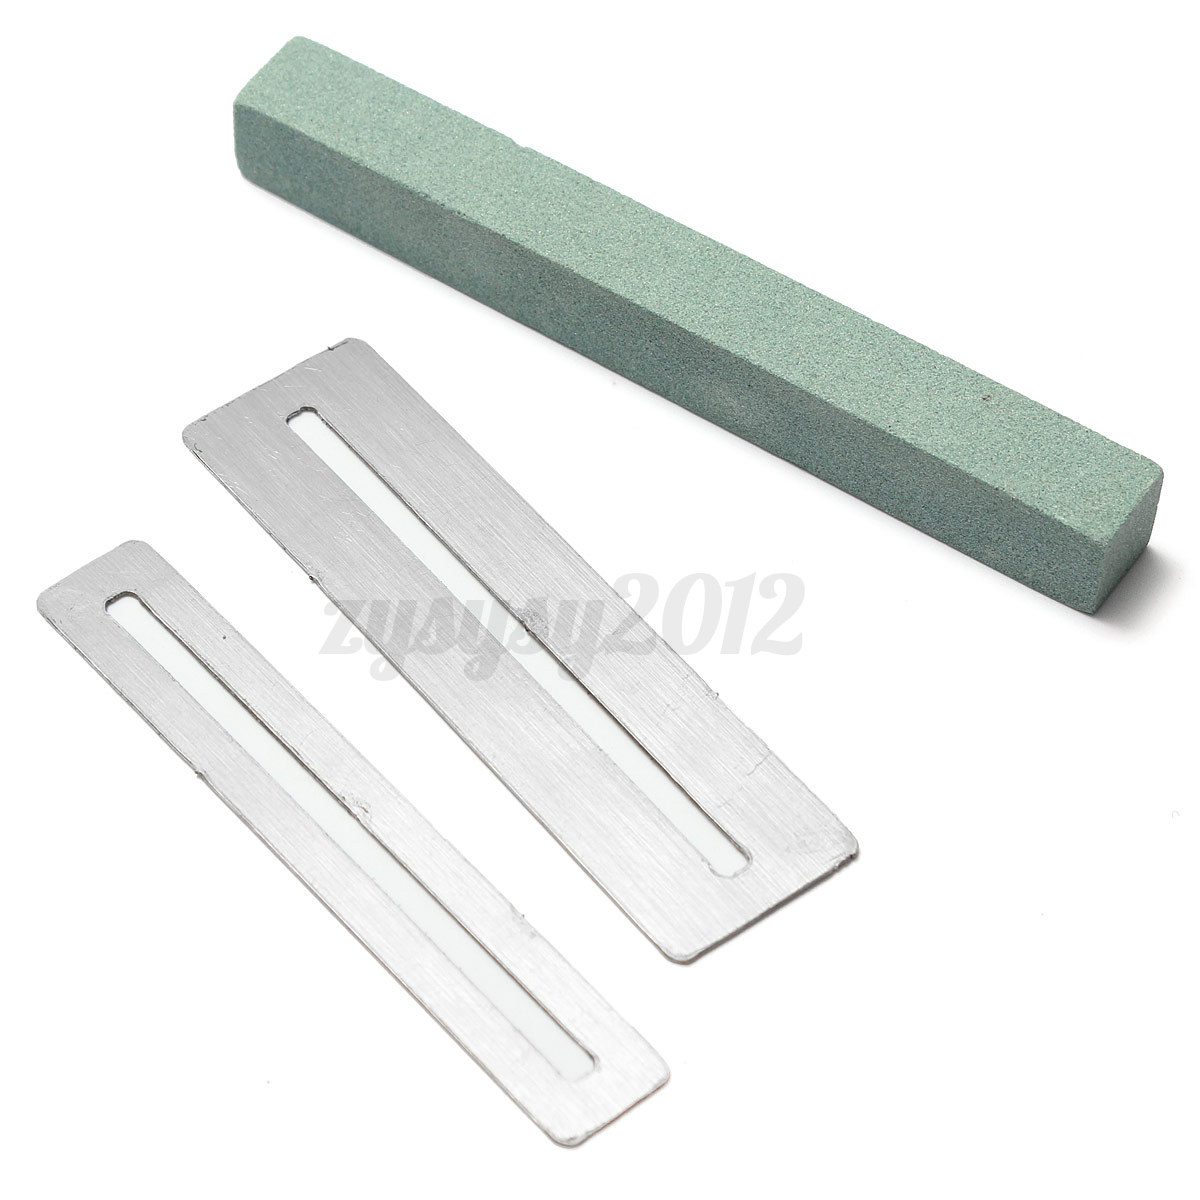 Guitar-Bass-Fretboard-Protector-Fret-Guards-with-Fretwire-Sander-Polish-UK-STOCK